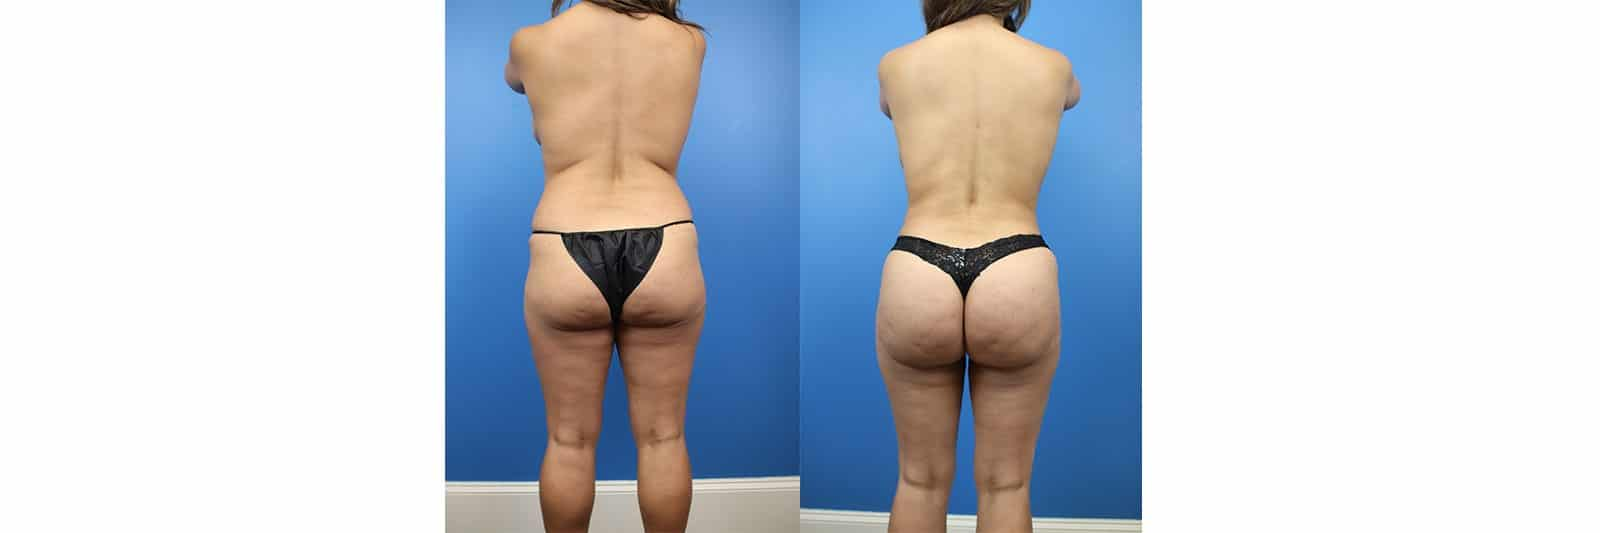 Buttock Aug With Fat Patient 1 6